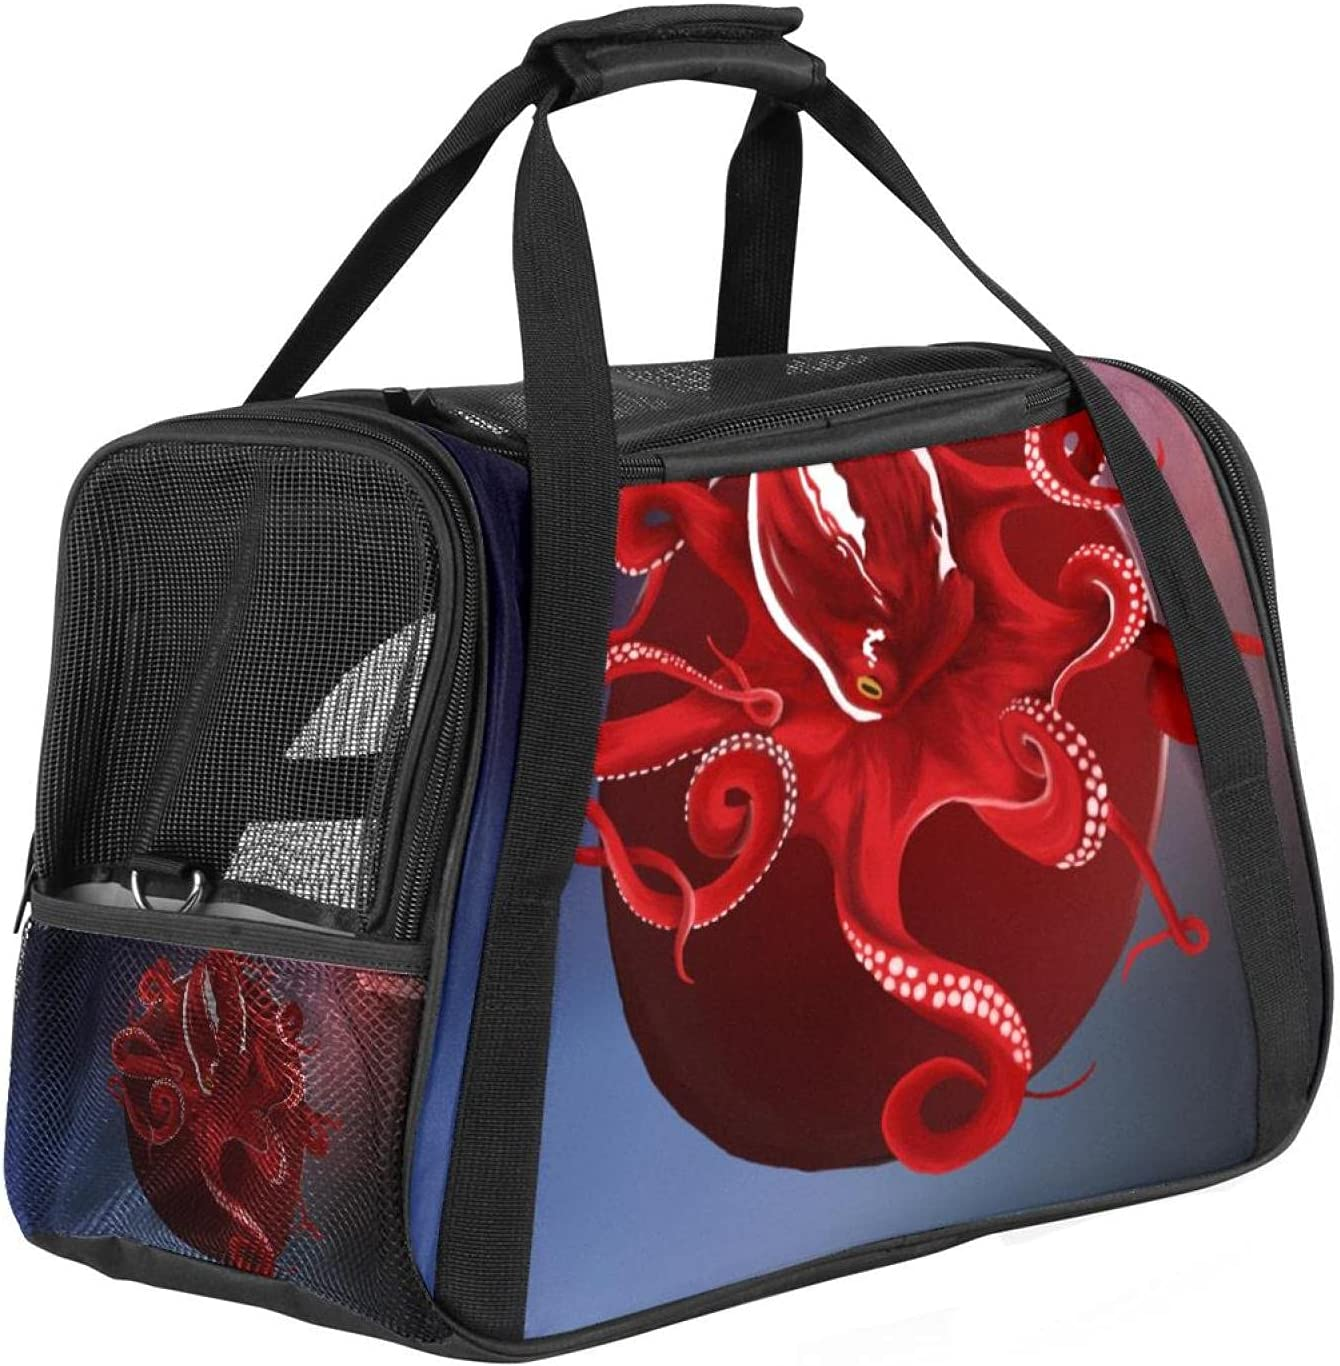 Airline Approved Pet Popular products Carriers Sided Soft Austin Mall Travel Collapsible